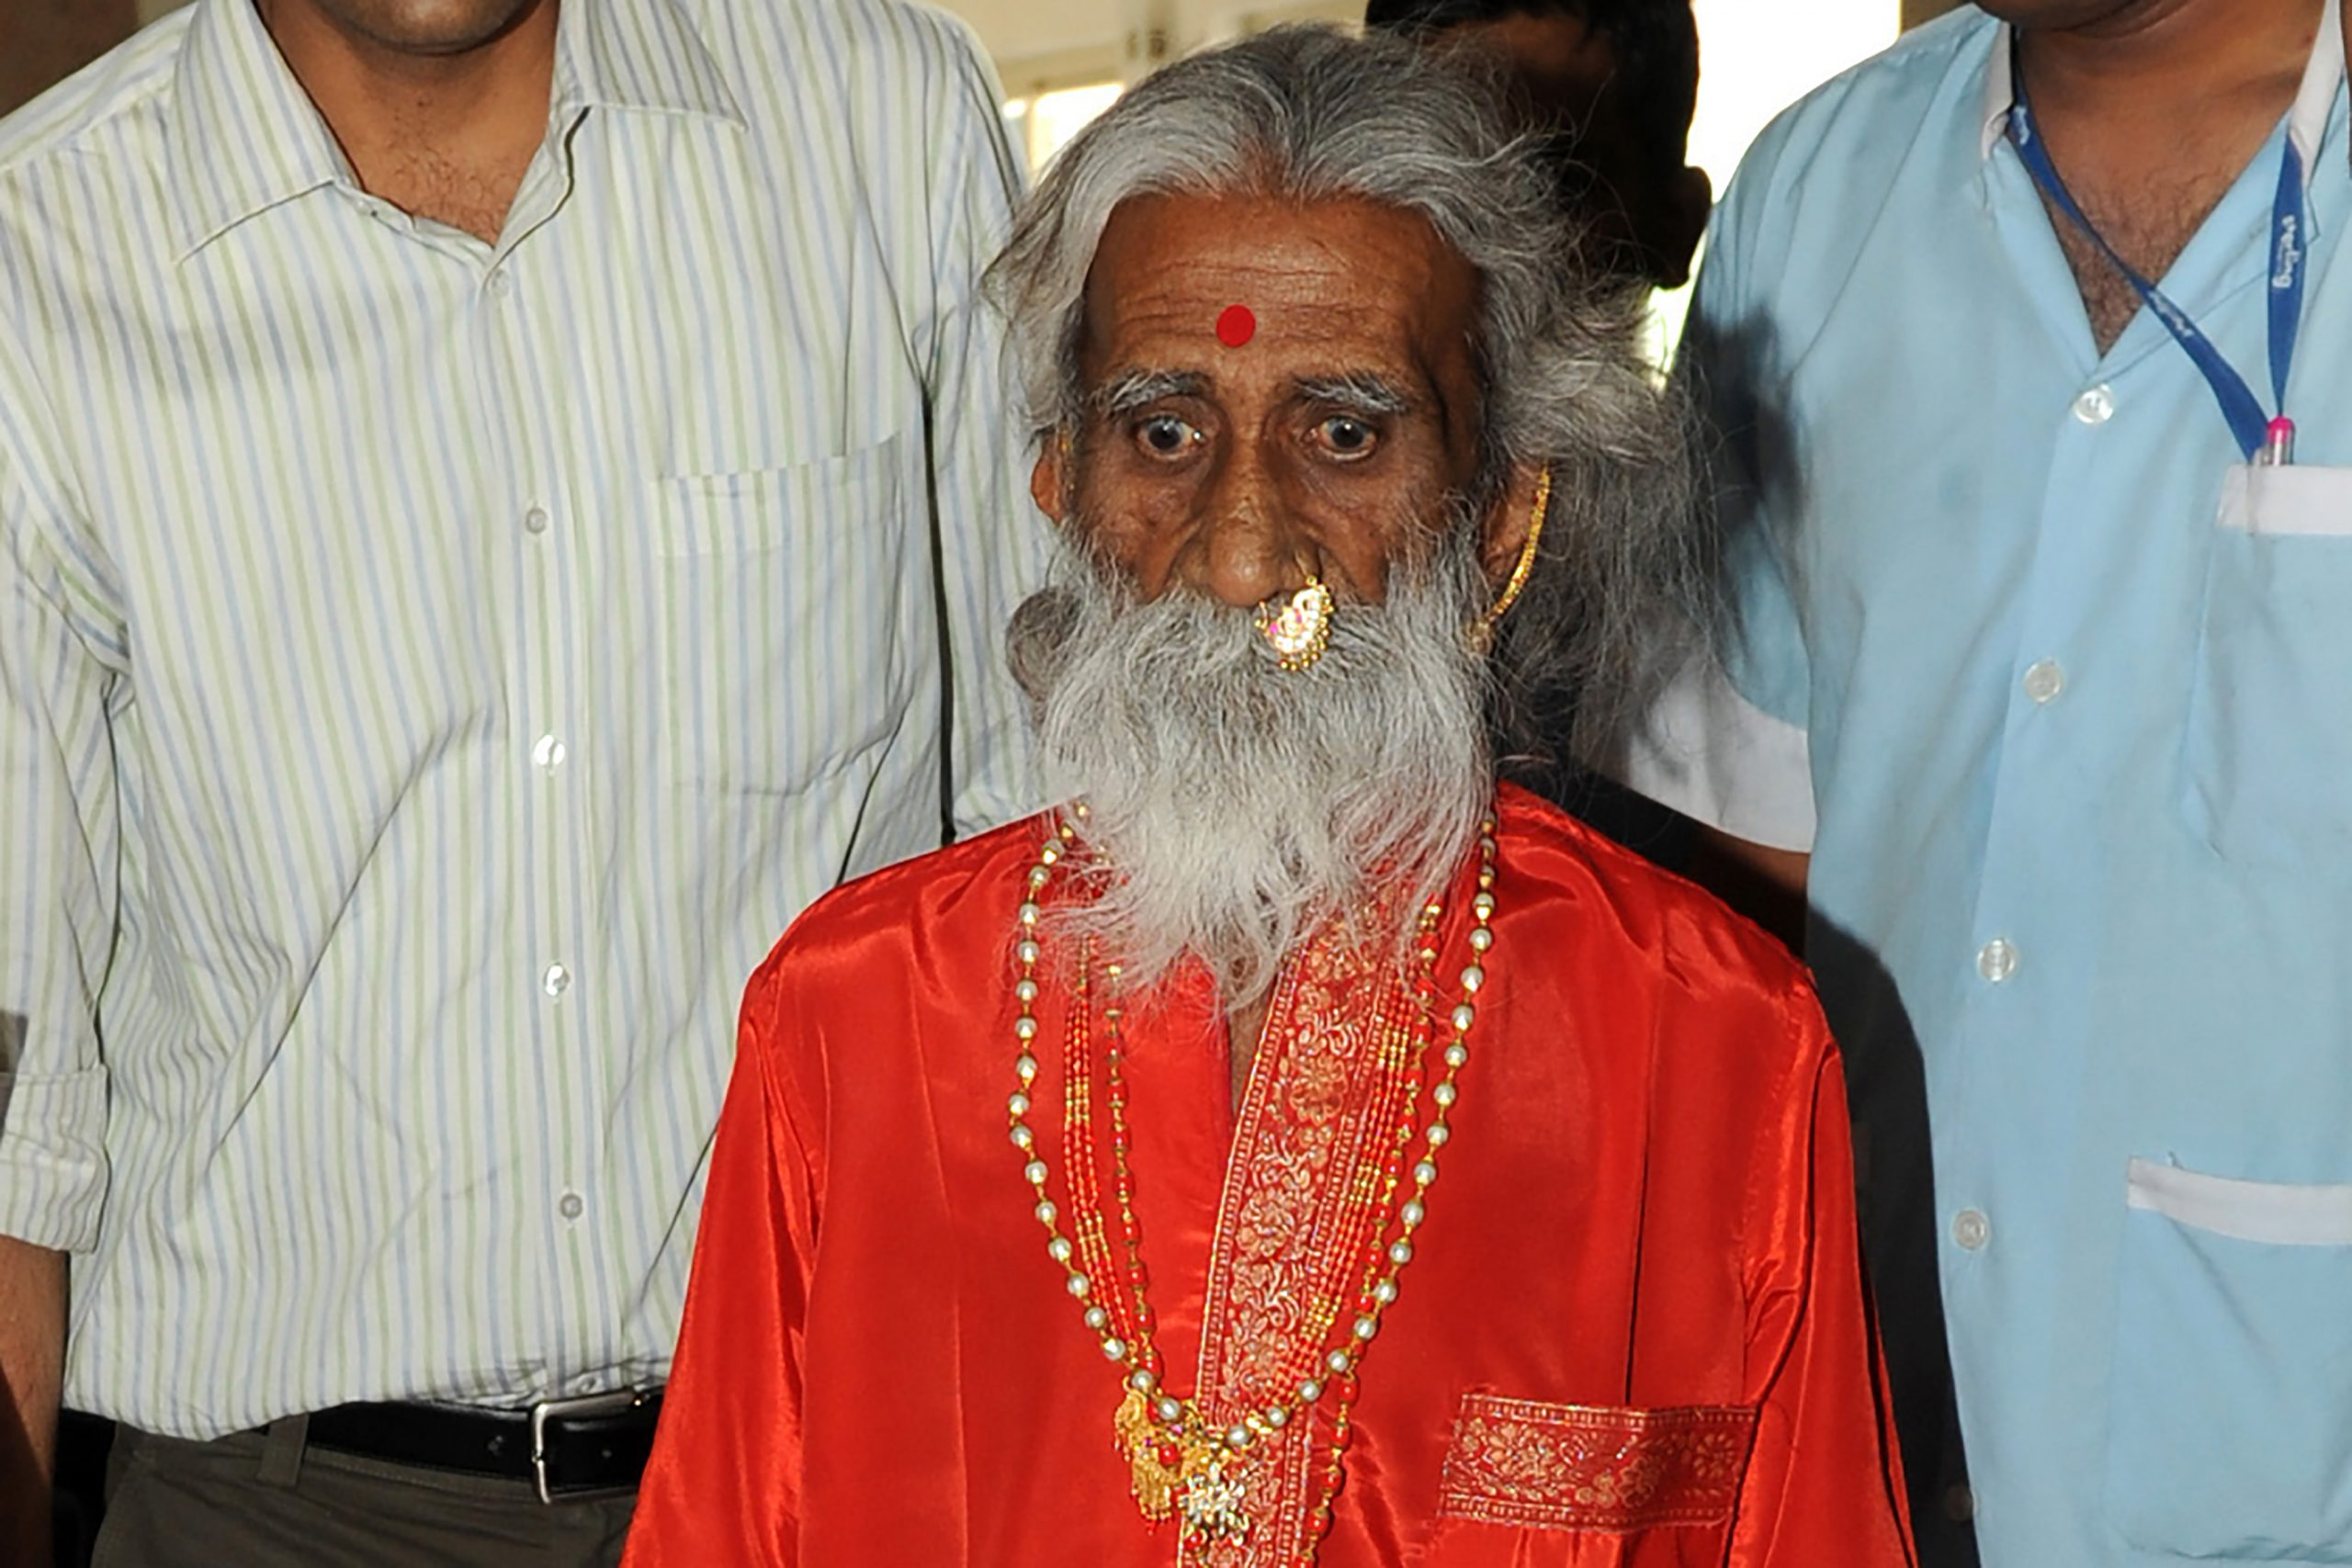 Indian sadhu (Hindu holy man) Prahlad Jani is escorted by devotees and relatives after a press conference in Ahmedbad on May 6, 2010.  A team of military doctors backed by India's national defence research centre is studying an 83-year-old holy man who claims to have spent seven decades surviving without food or water. AFP PHOTO/ Sam PANTHAKY (Photo by SAM PANTHAKY / AFP) (Photo by SAM PANTHAKY/AFP via Getty Images)